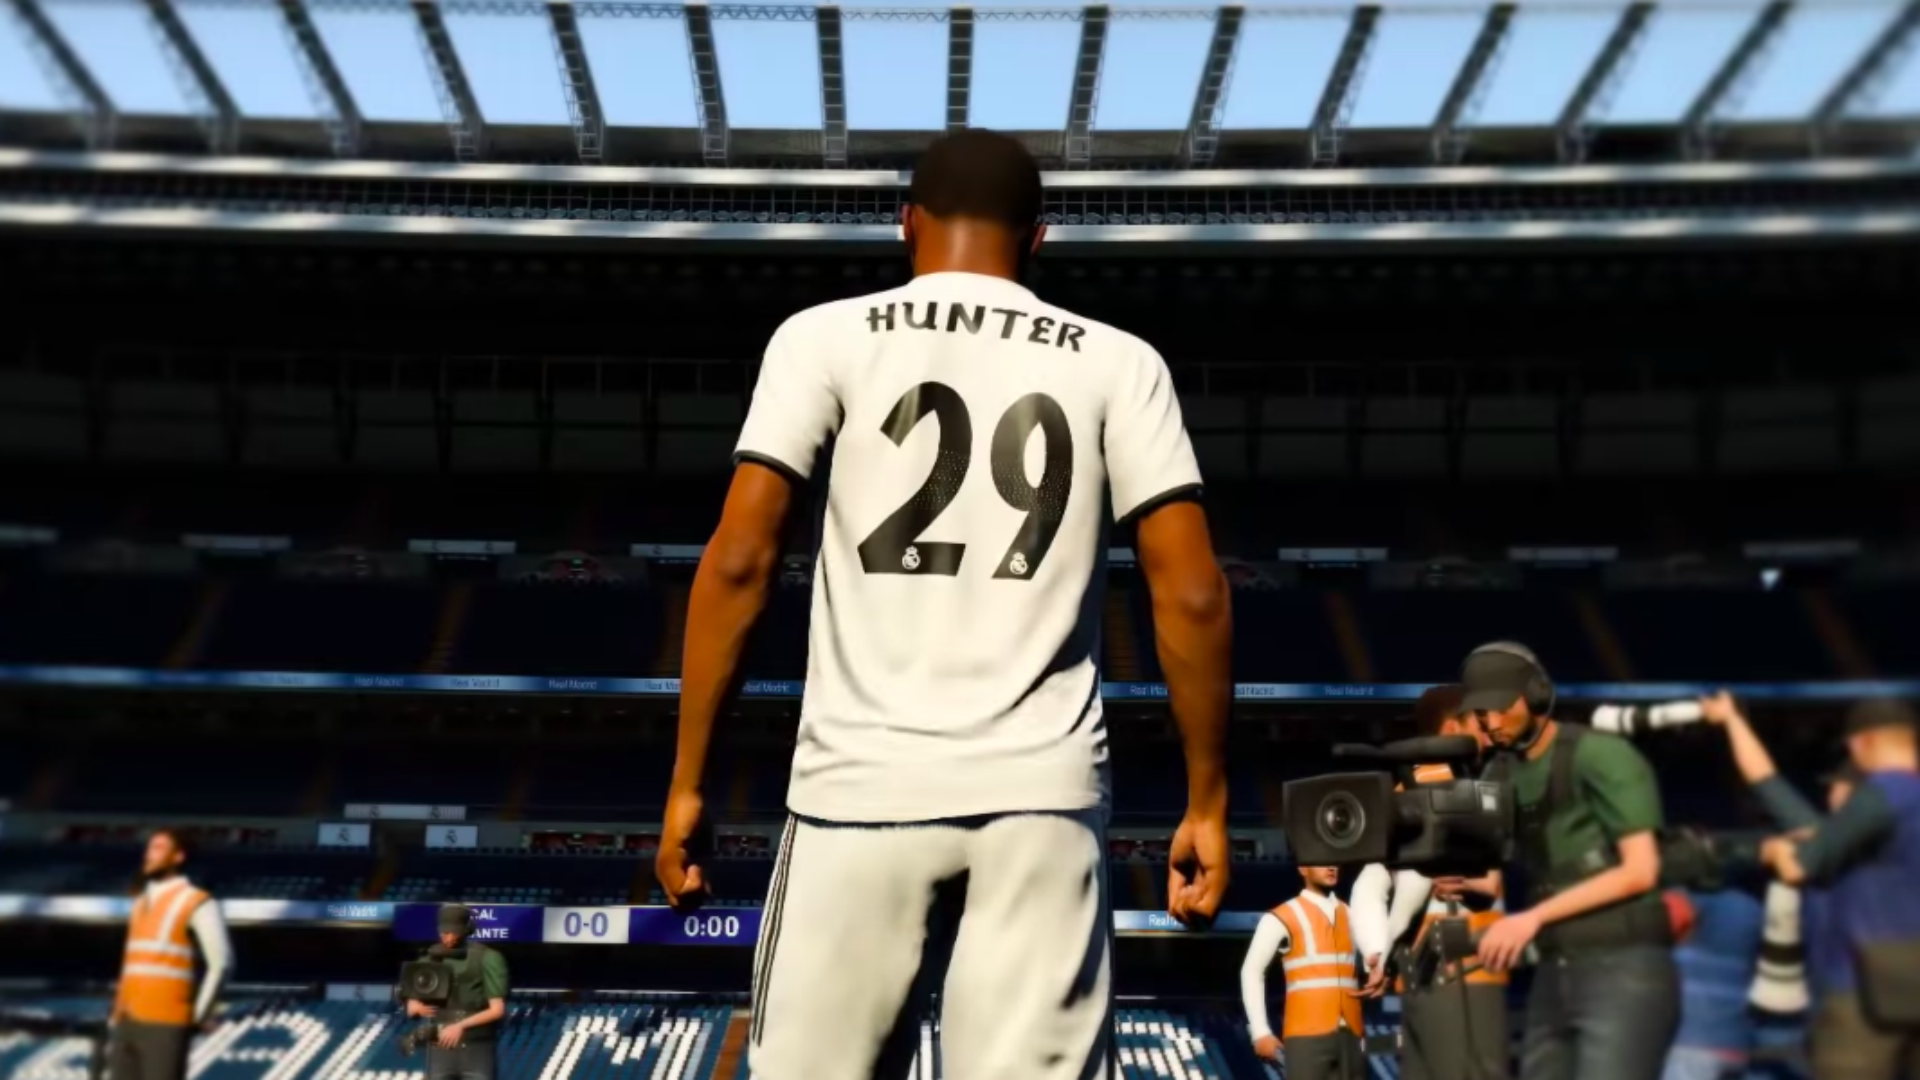 FIFA 19 The Journey: Alex Hunter's story so far & what to expect in